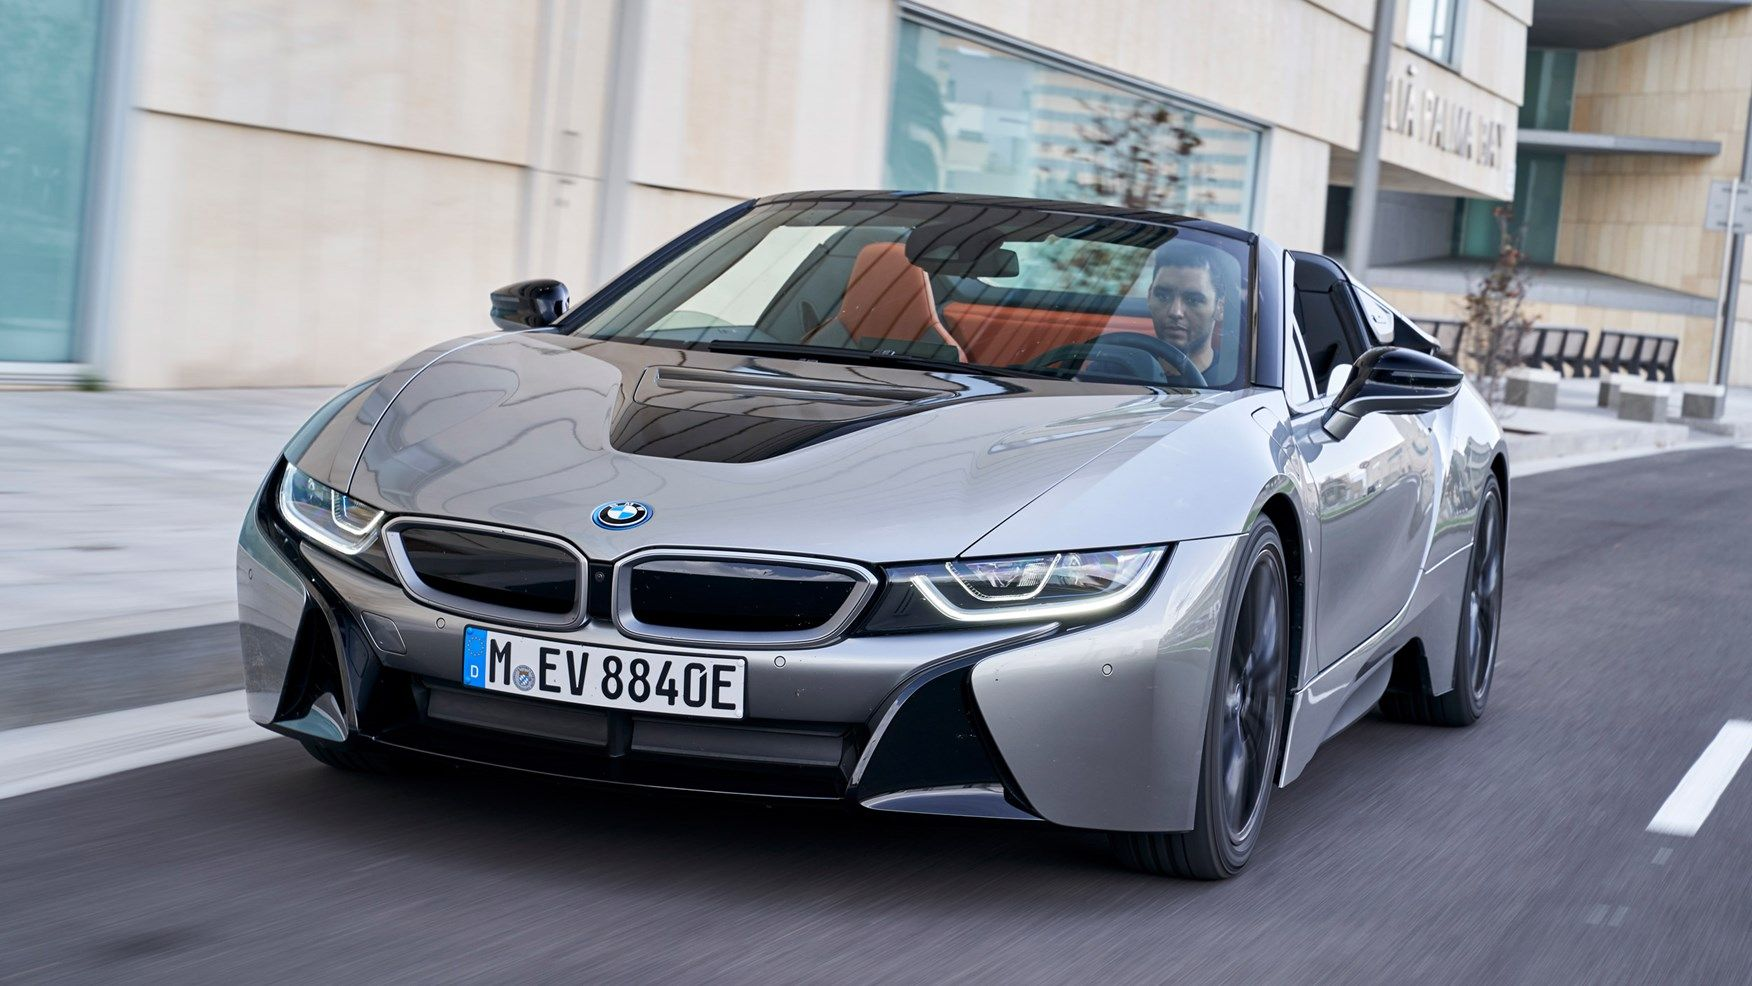 New 2018 Bmw I8 Roadster Expert Review By Car Magazine Uk With